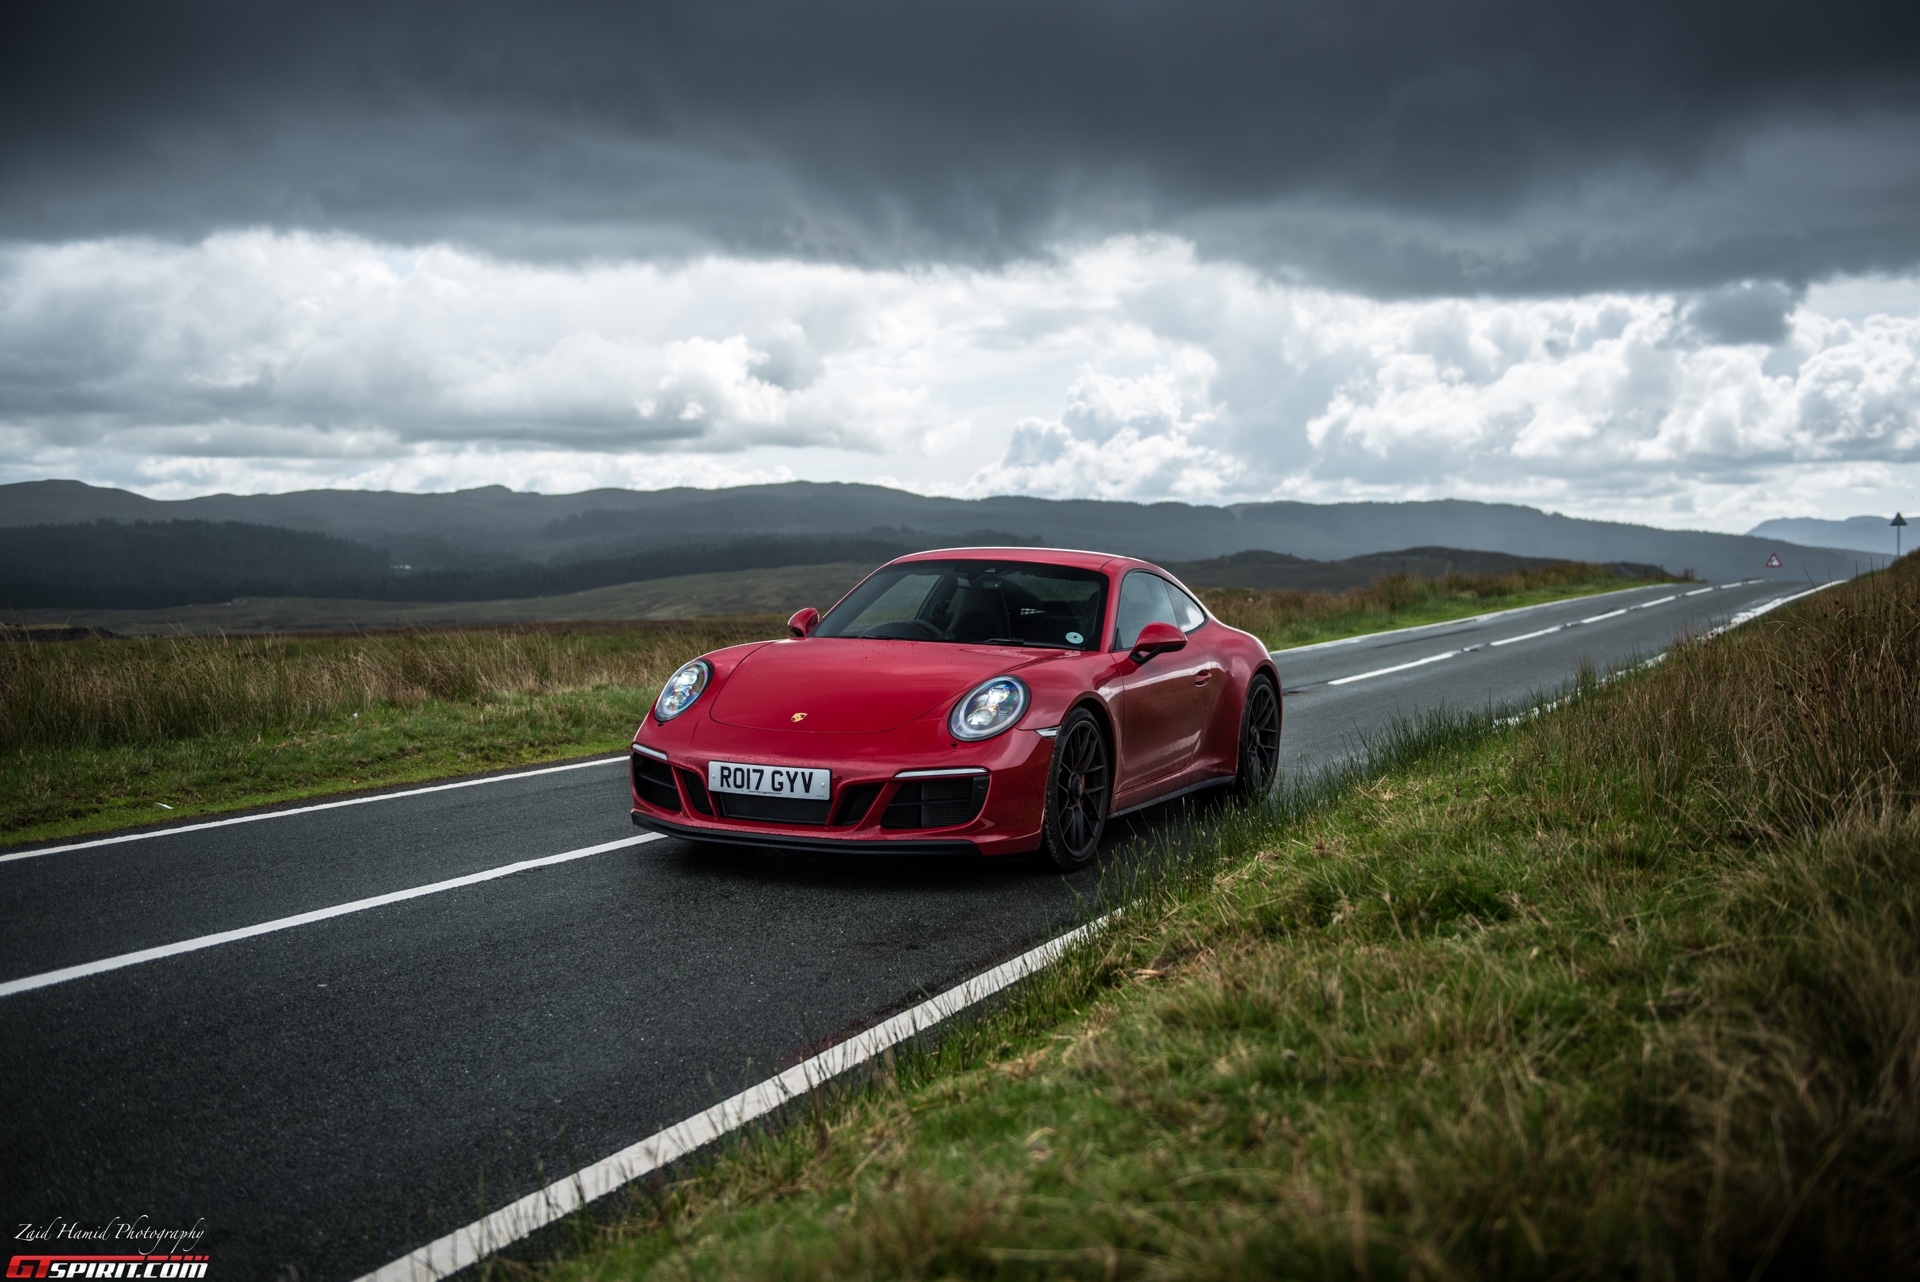 Special Report: Exploring Wales With A Porsche 911 GTS